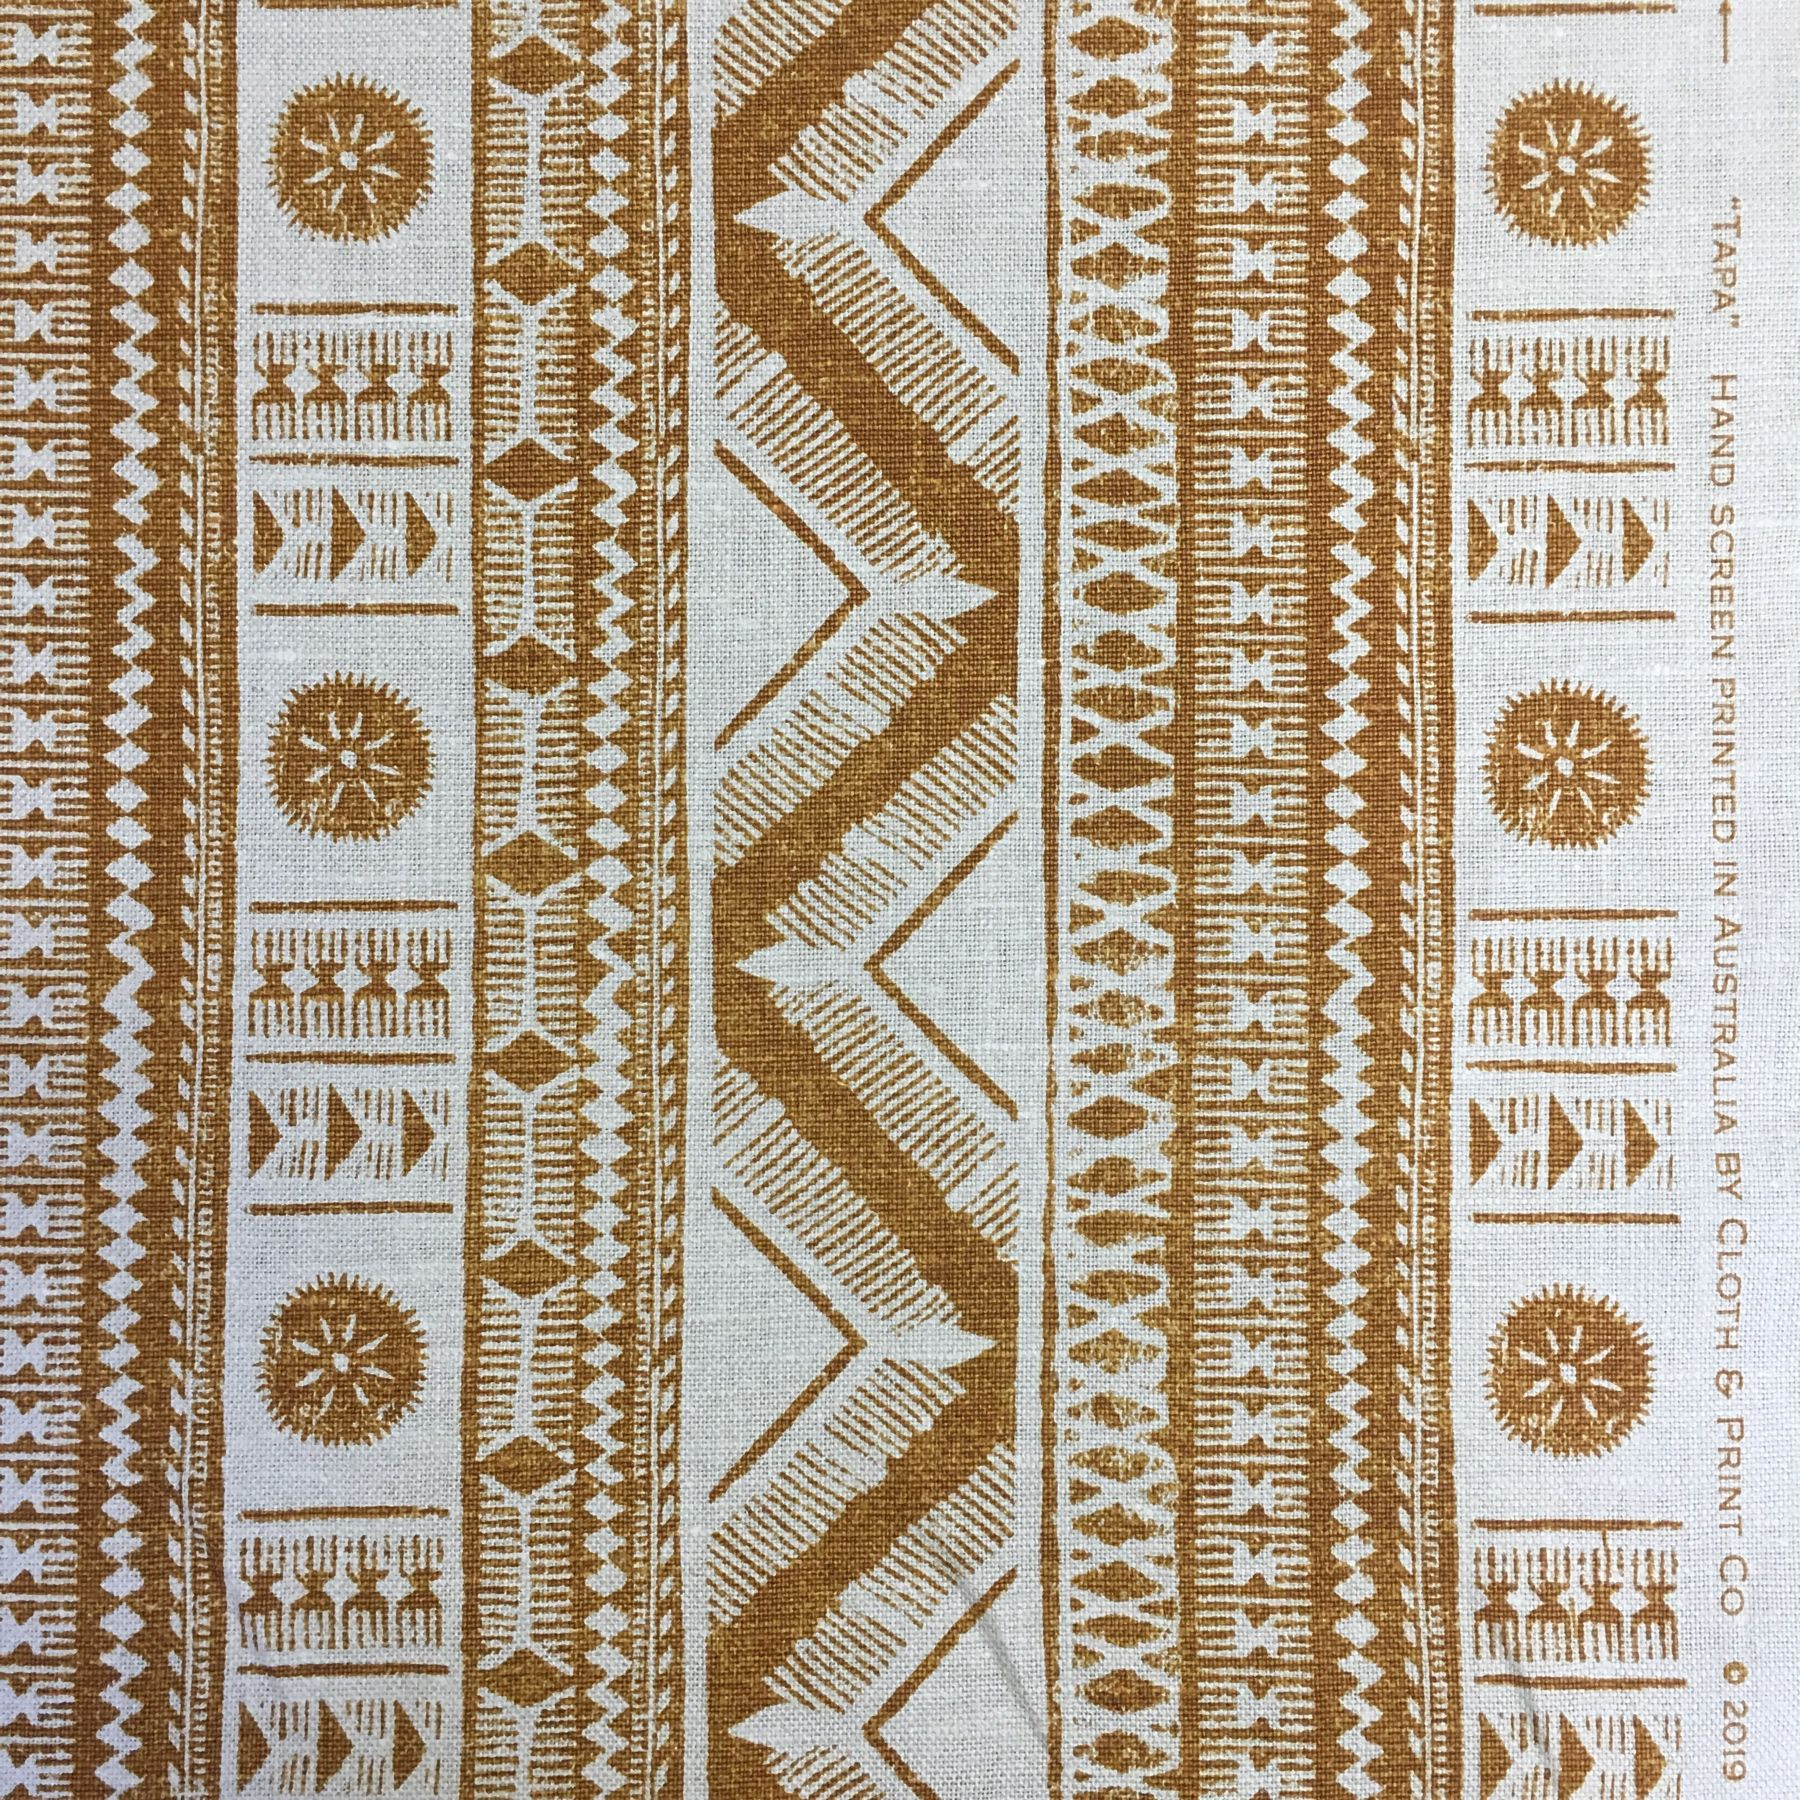 The true Pacific aesthetic can we seen in our TAPA design, 5 great tropical colours including Yam shown.   #clothandprintco #clothandprint #printedlinen #handsceenprinted #screenprinted #textiles #upholsteryfabric #linenlove #linenlovers #interiordesignaustralia #ecofabrics #australianmade #tapa #yam #pacifica #pacifika #tapacloth #coloursoftheearth